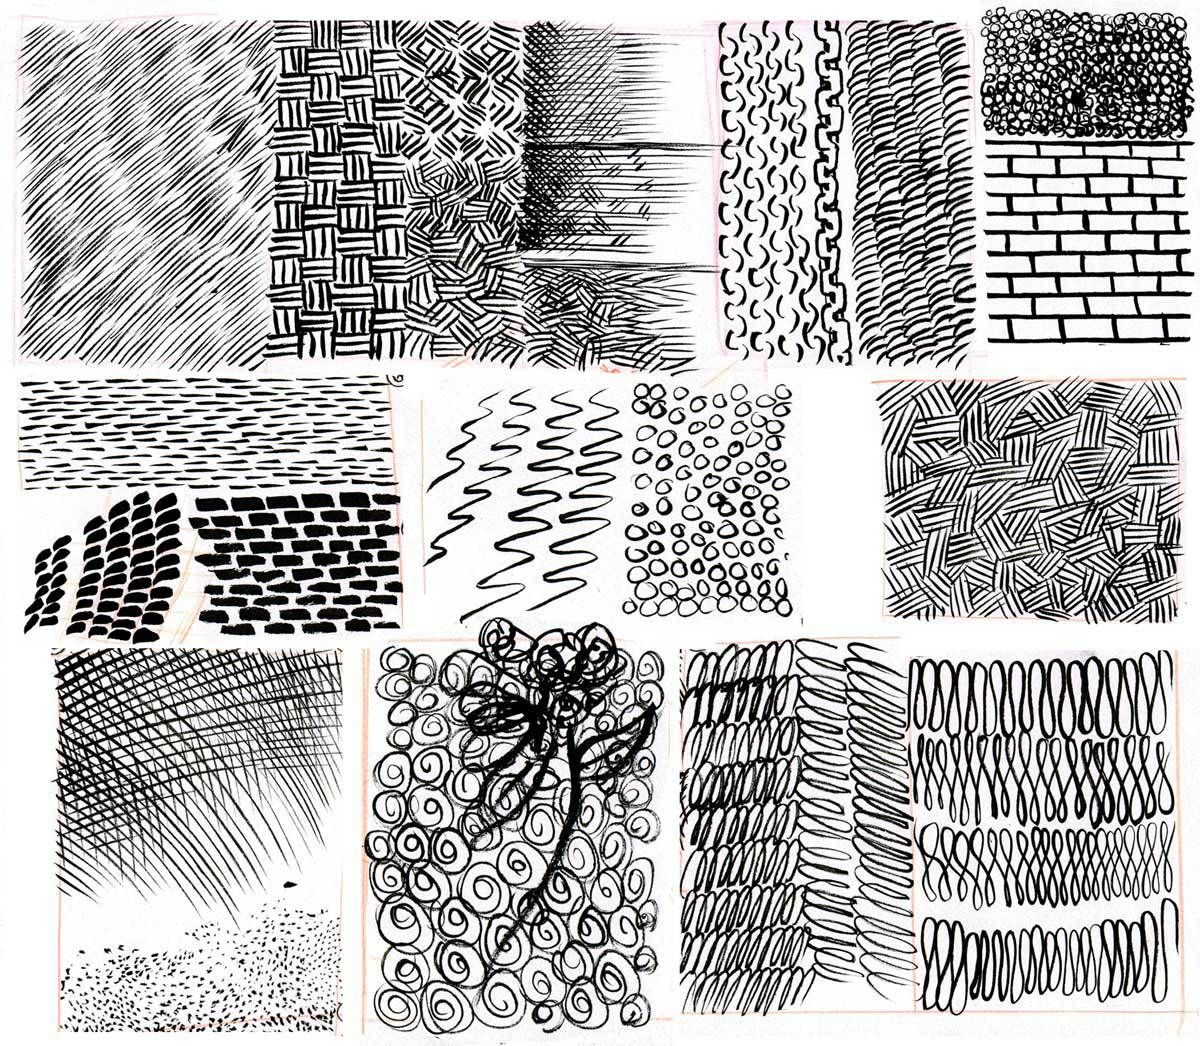 Pattern Amp Rendering Exercises Go Here For General Line